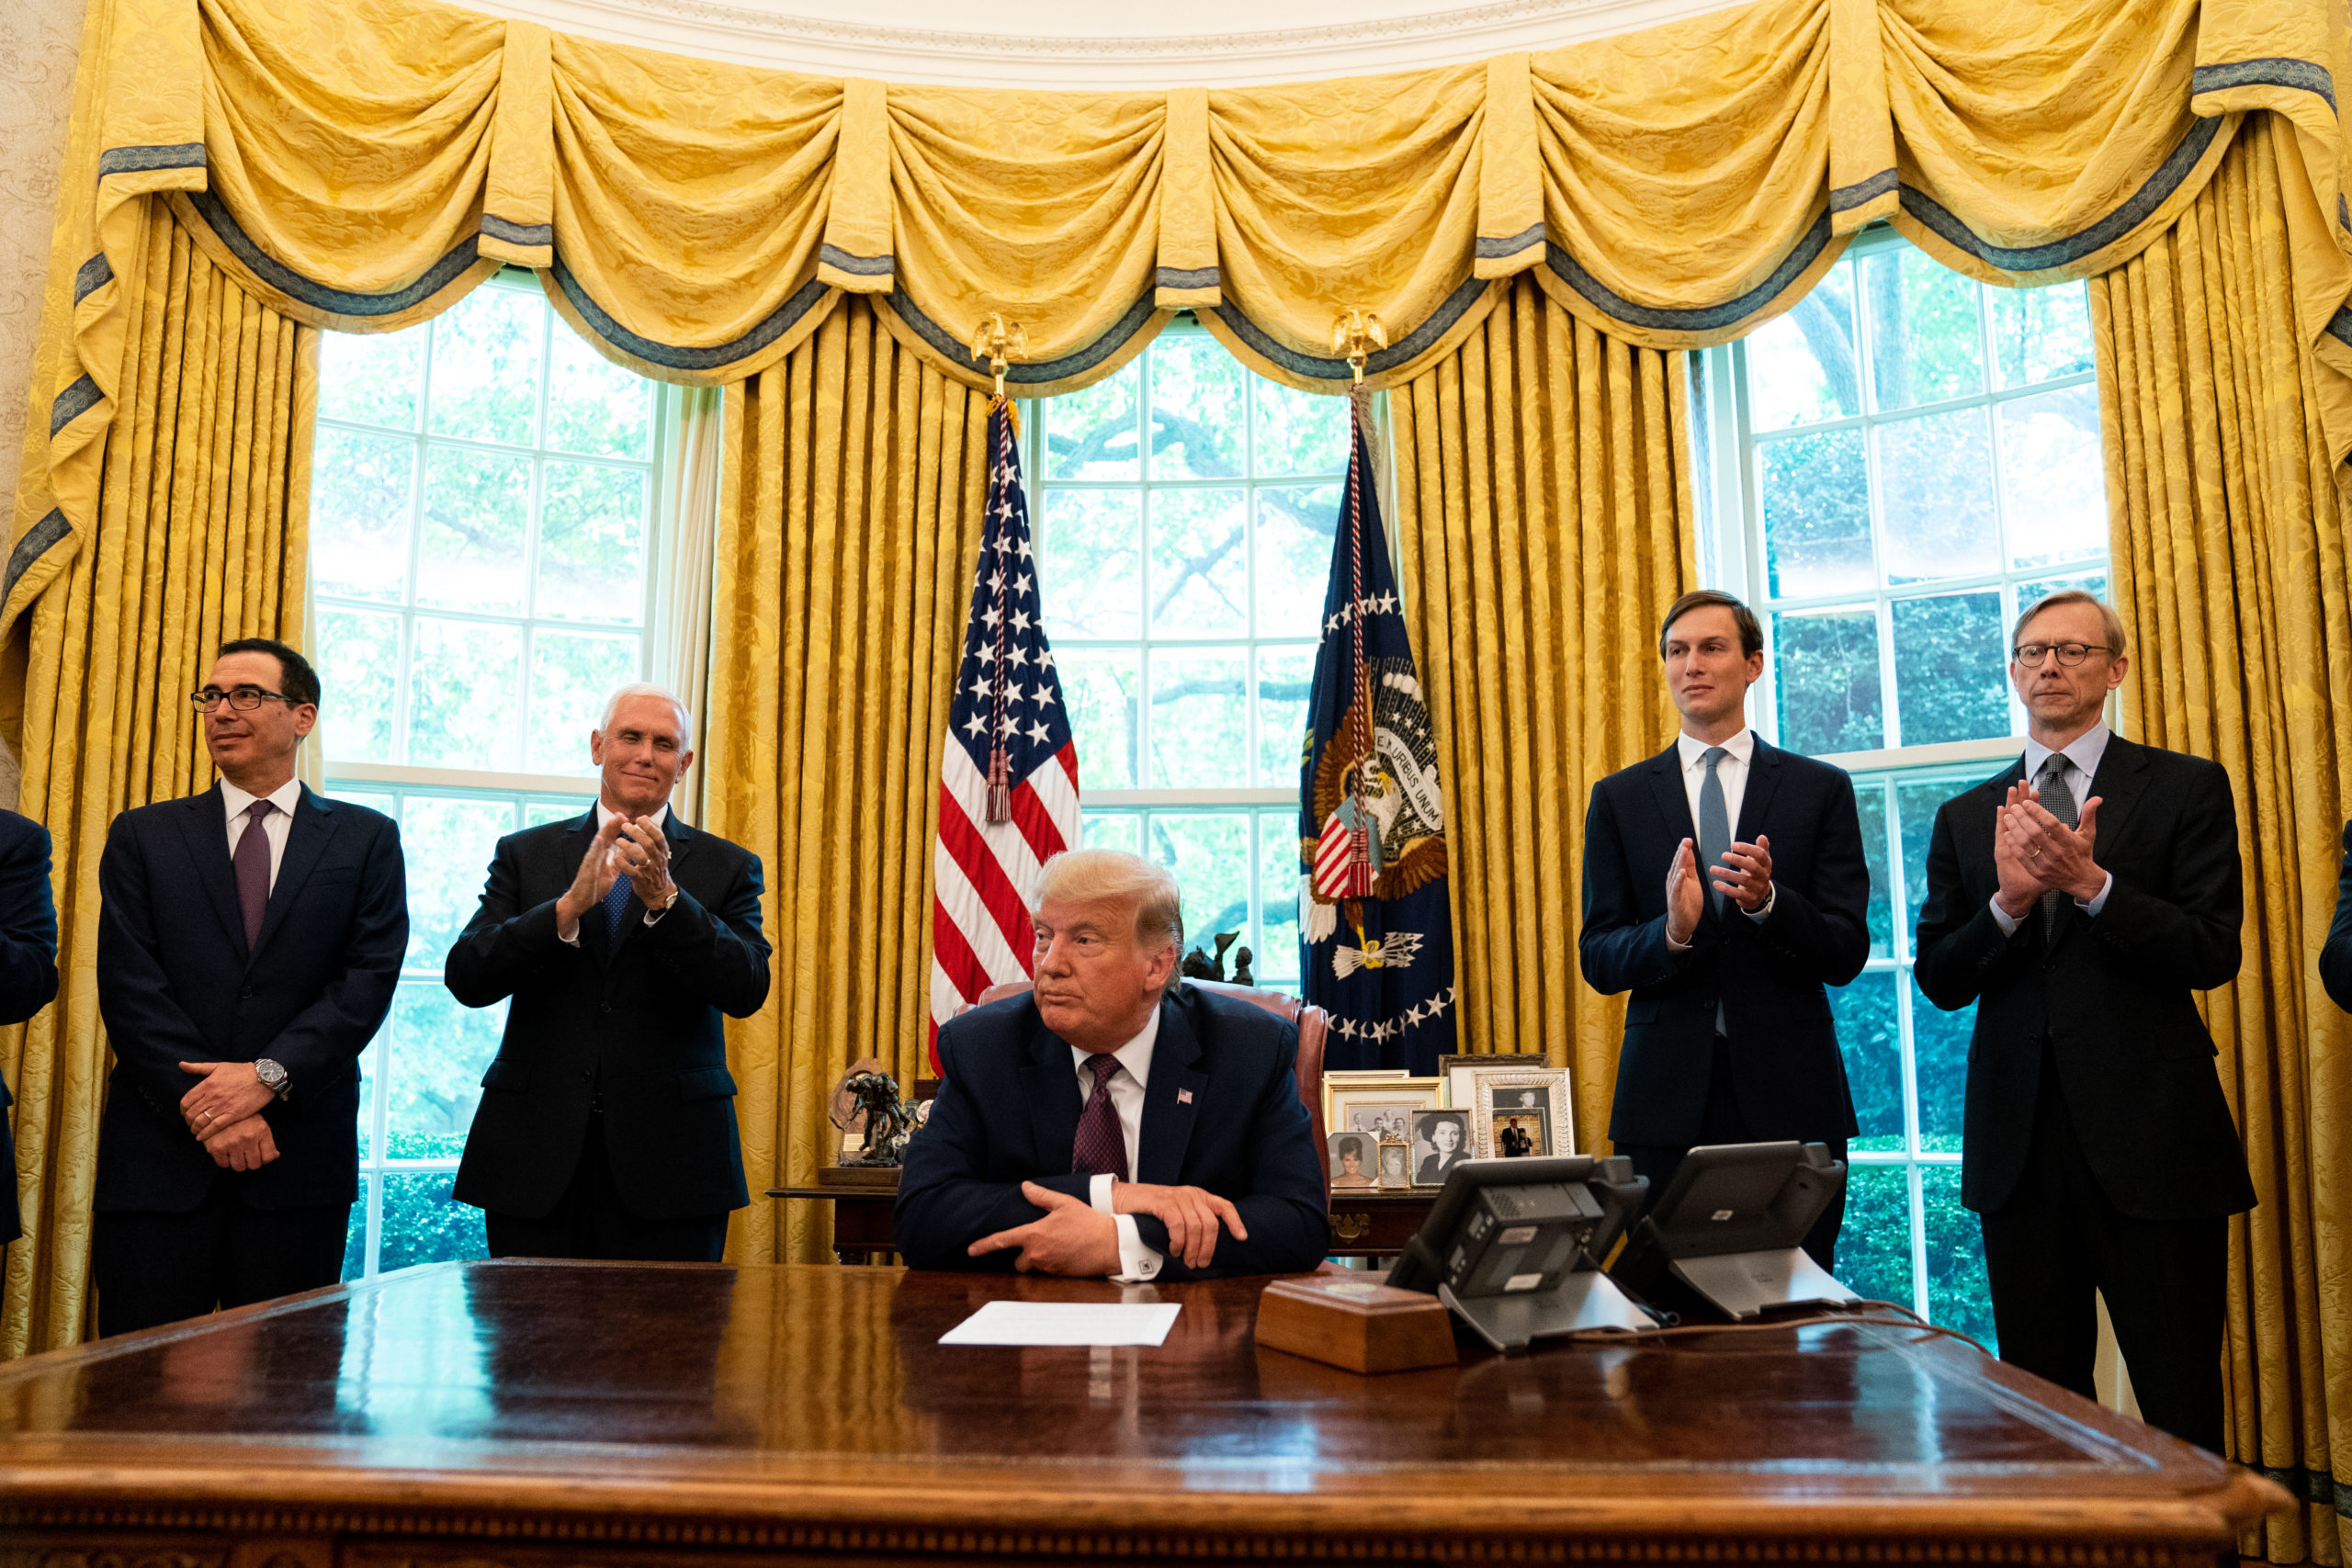 WASHINGTON, DC - SEPTEMBER 11: (L-R) U.S. Treasure Secretary Steven Mnuchin, U.S. Vice President Mike Pence, U.S. President Donald Trump, and Advisor Jared Kushner, speak in the Oval Office to announce that Bahrain will establish diplomatic relations with Israel, at the White House in Washington, DC on September 11, 2020. The announcement follows one last month by Israel and the United Arab Emirates that they would seek to normalize relations with each other. (Photo by Anna Moneymaker-Pool/Getty Images)